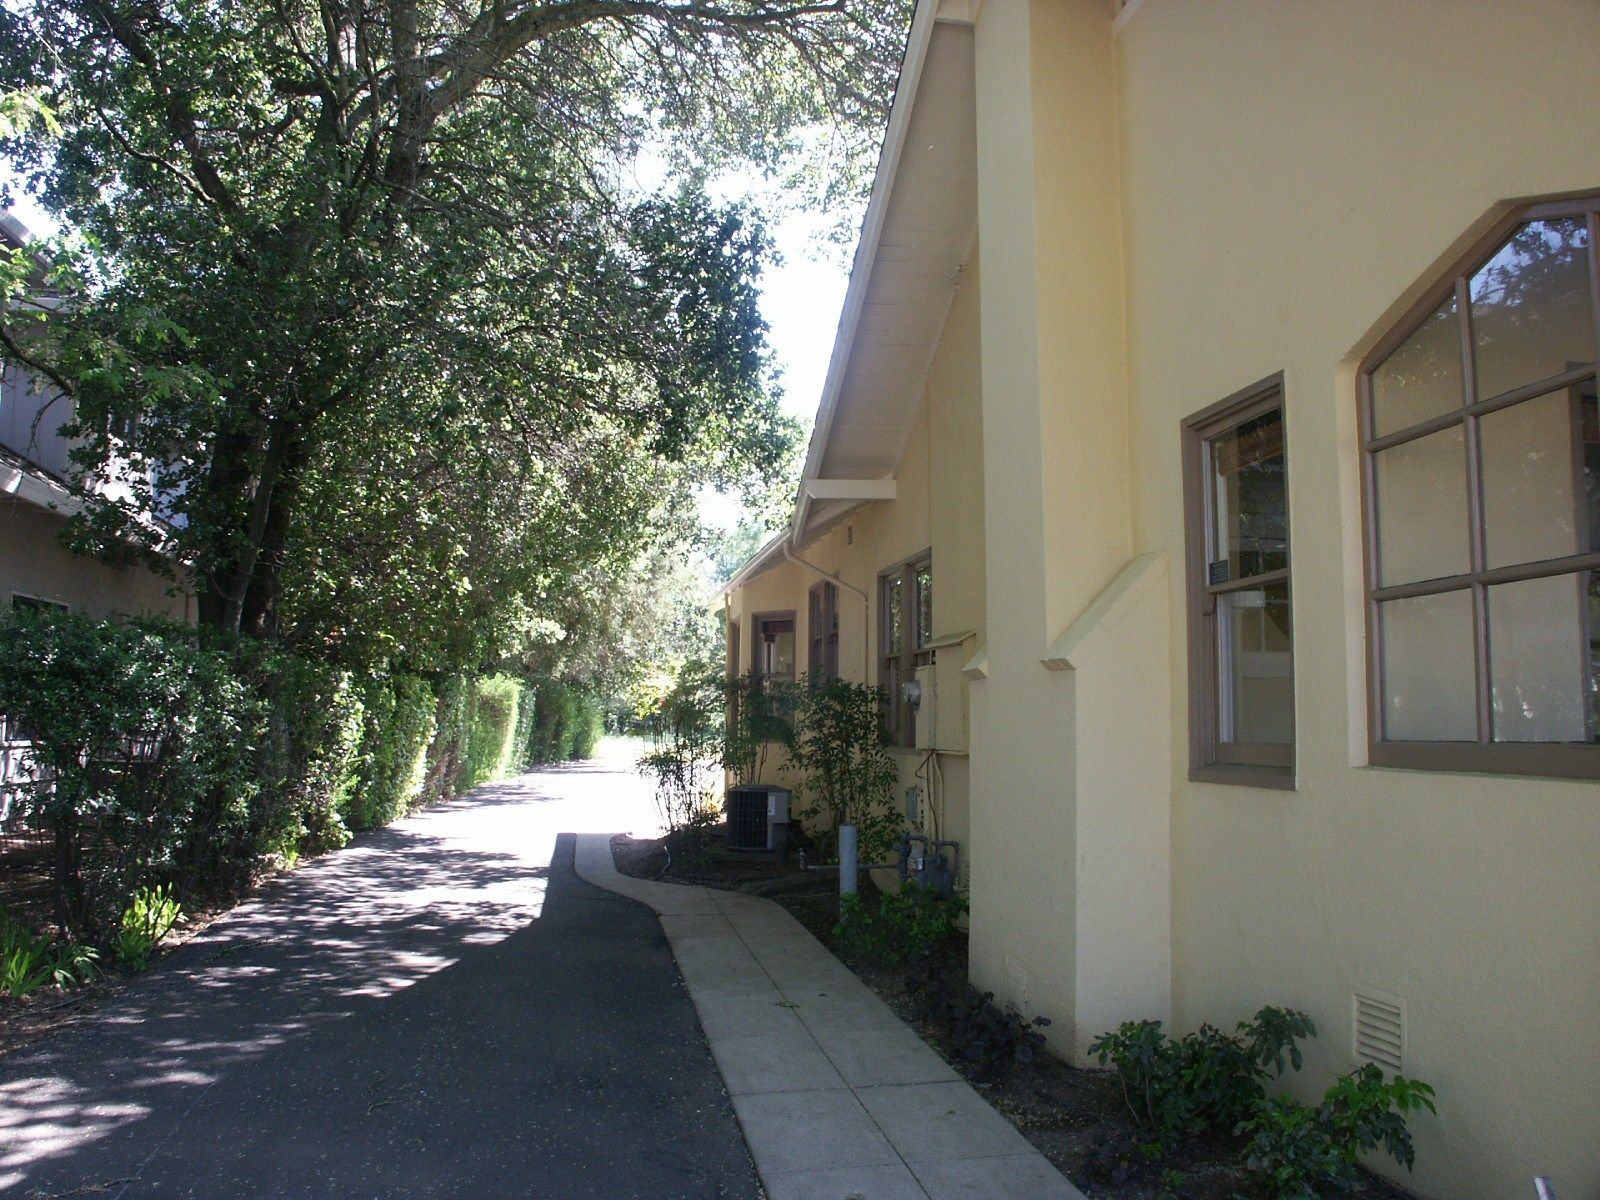 Mixed Use Property in City of Sonoma